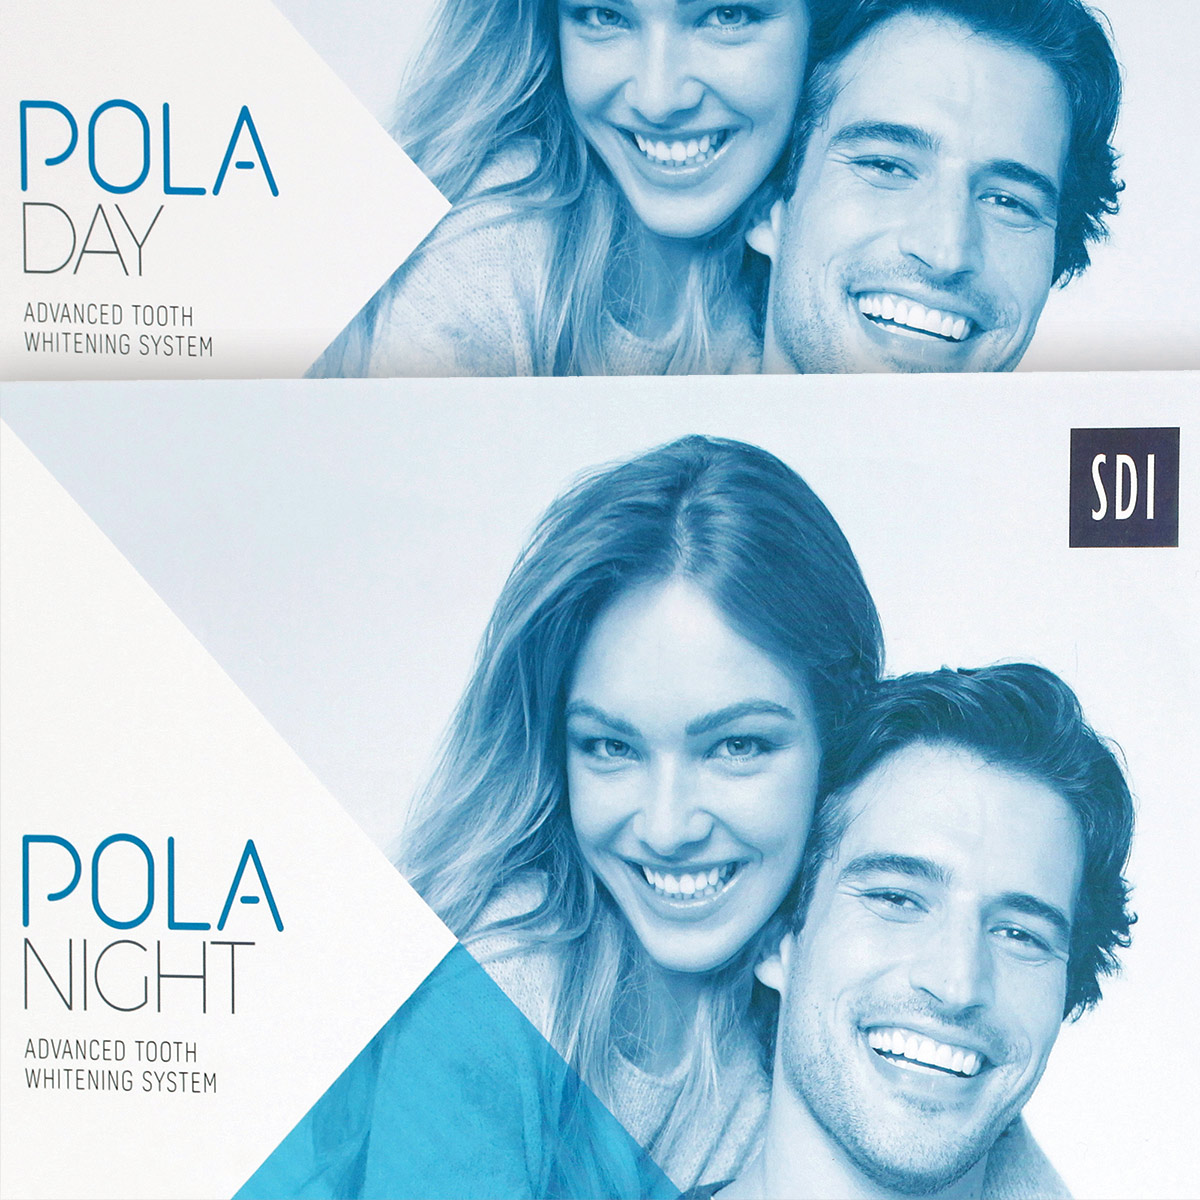 SDI Pola Day and Pola Night